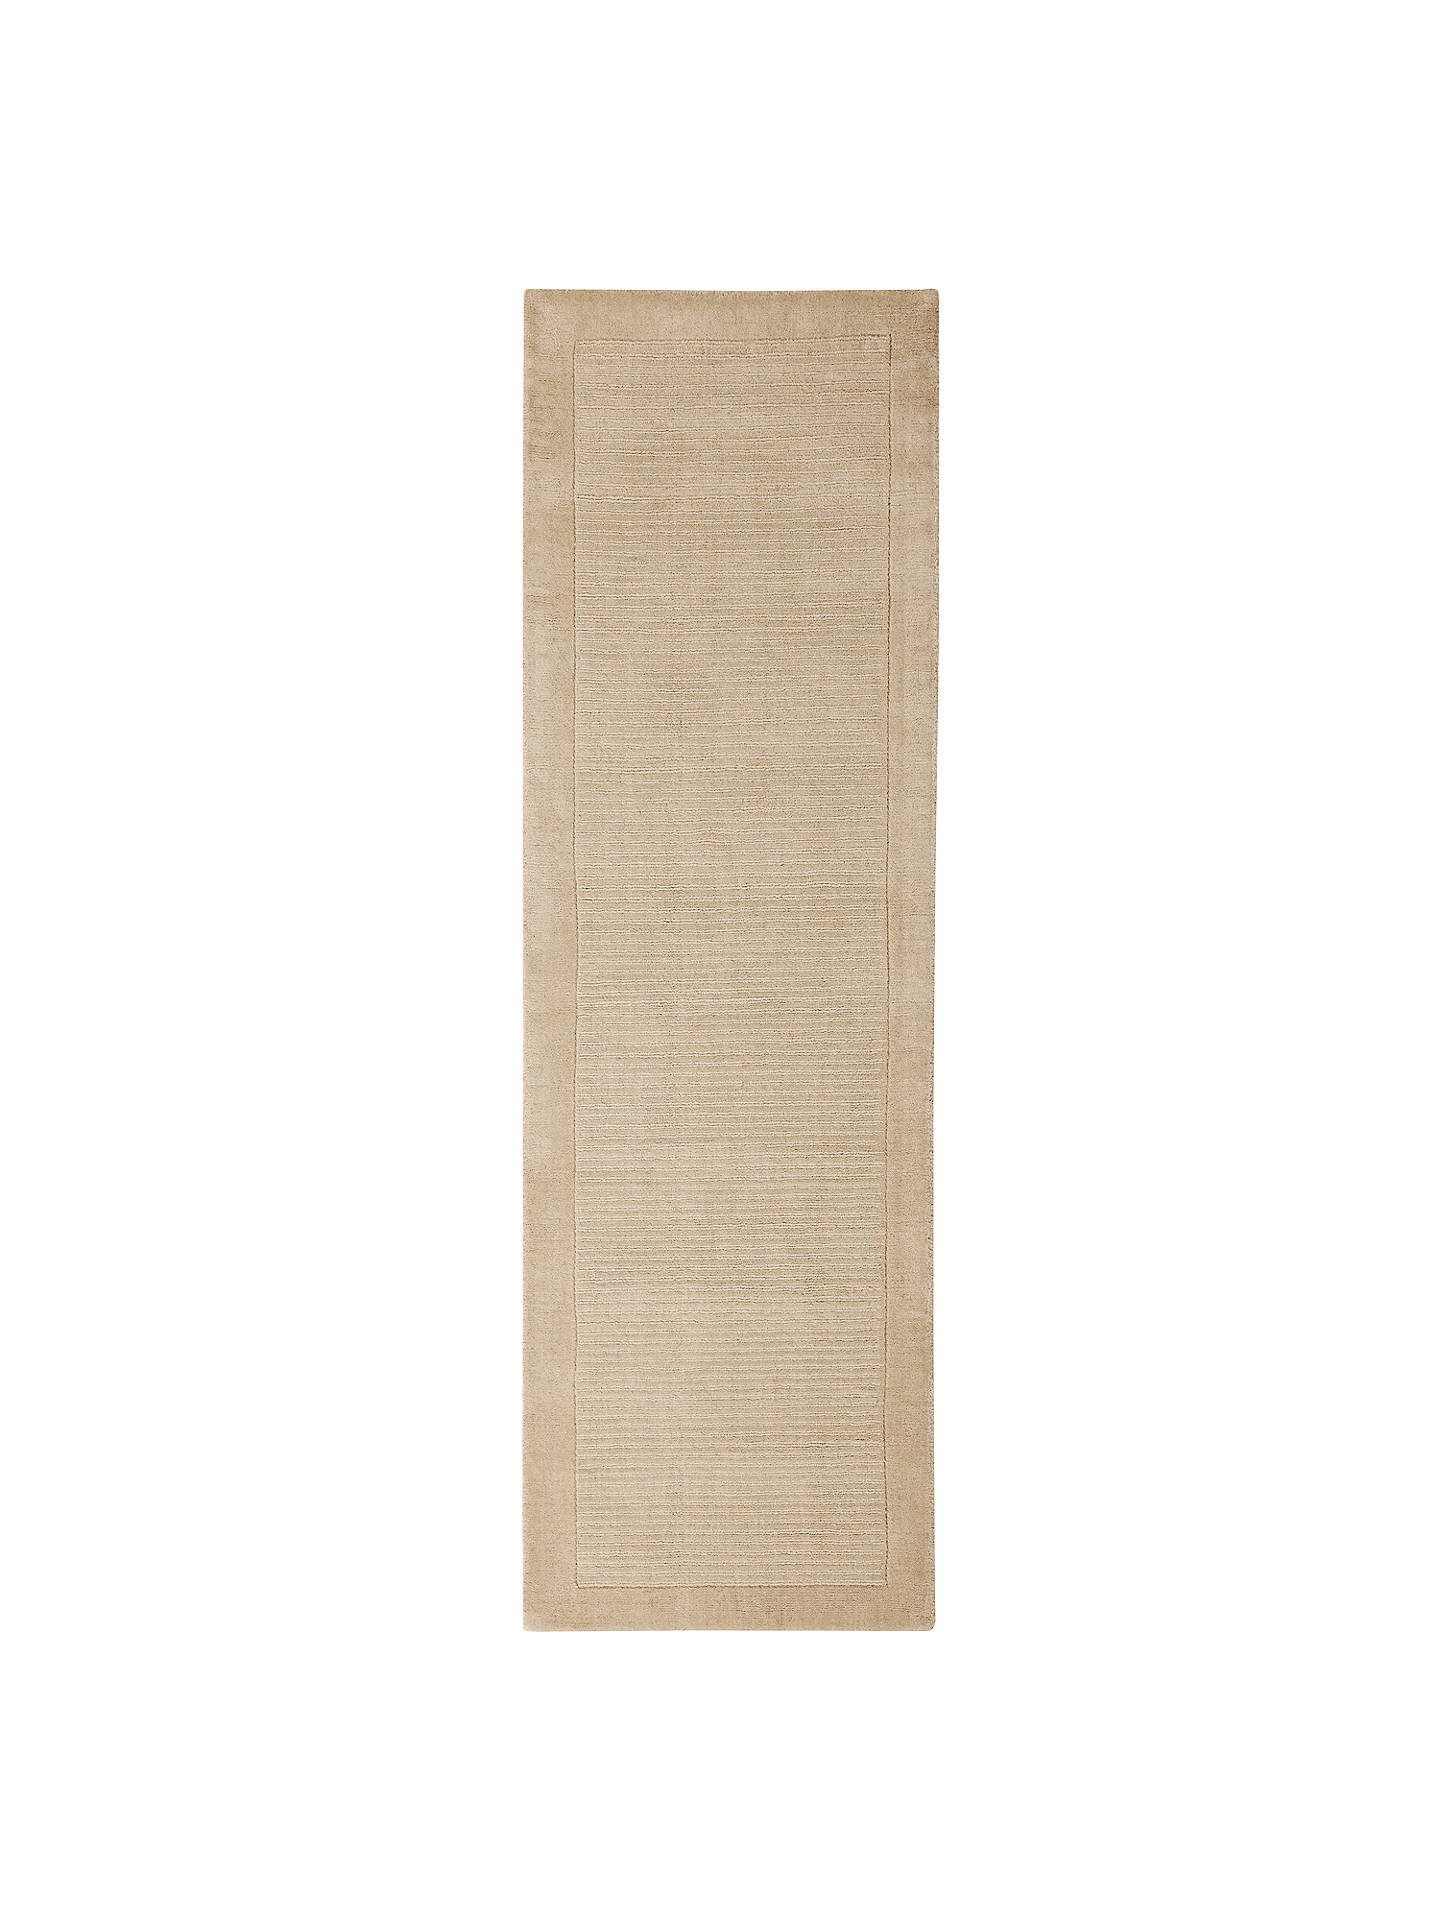 John Lewis Perth Runner Rug Cream L230 X W70cm Online At Johnlewis Com